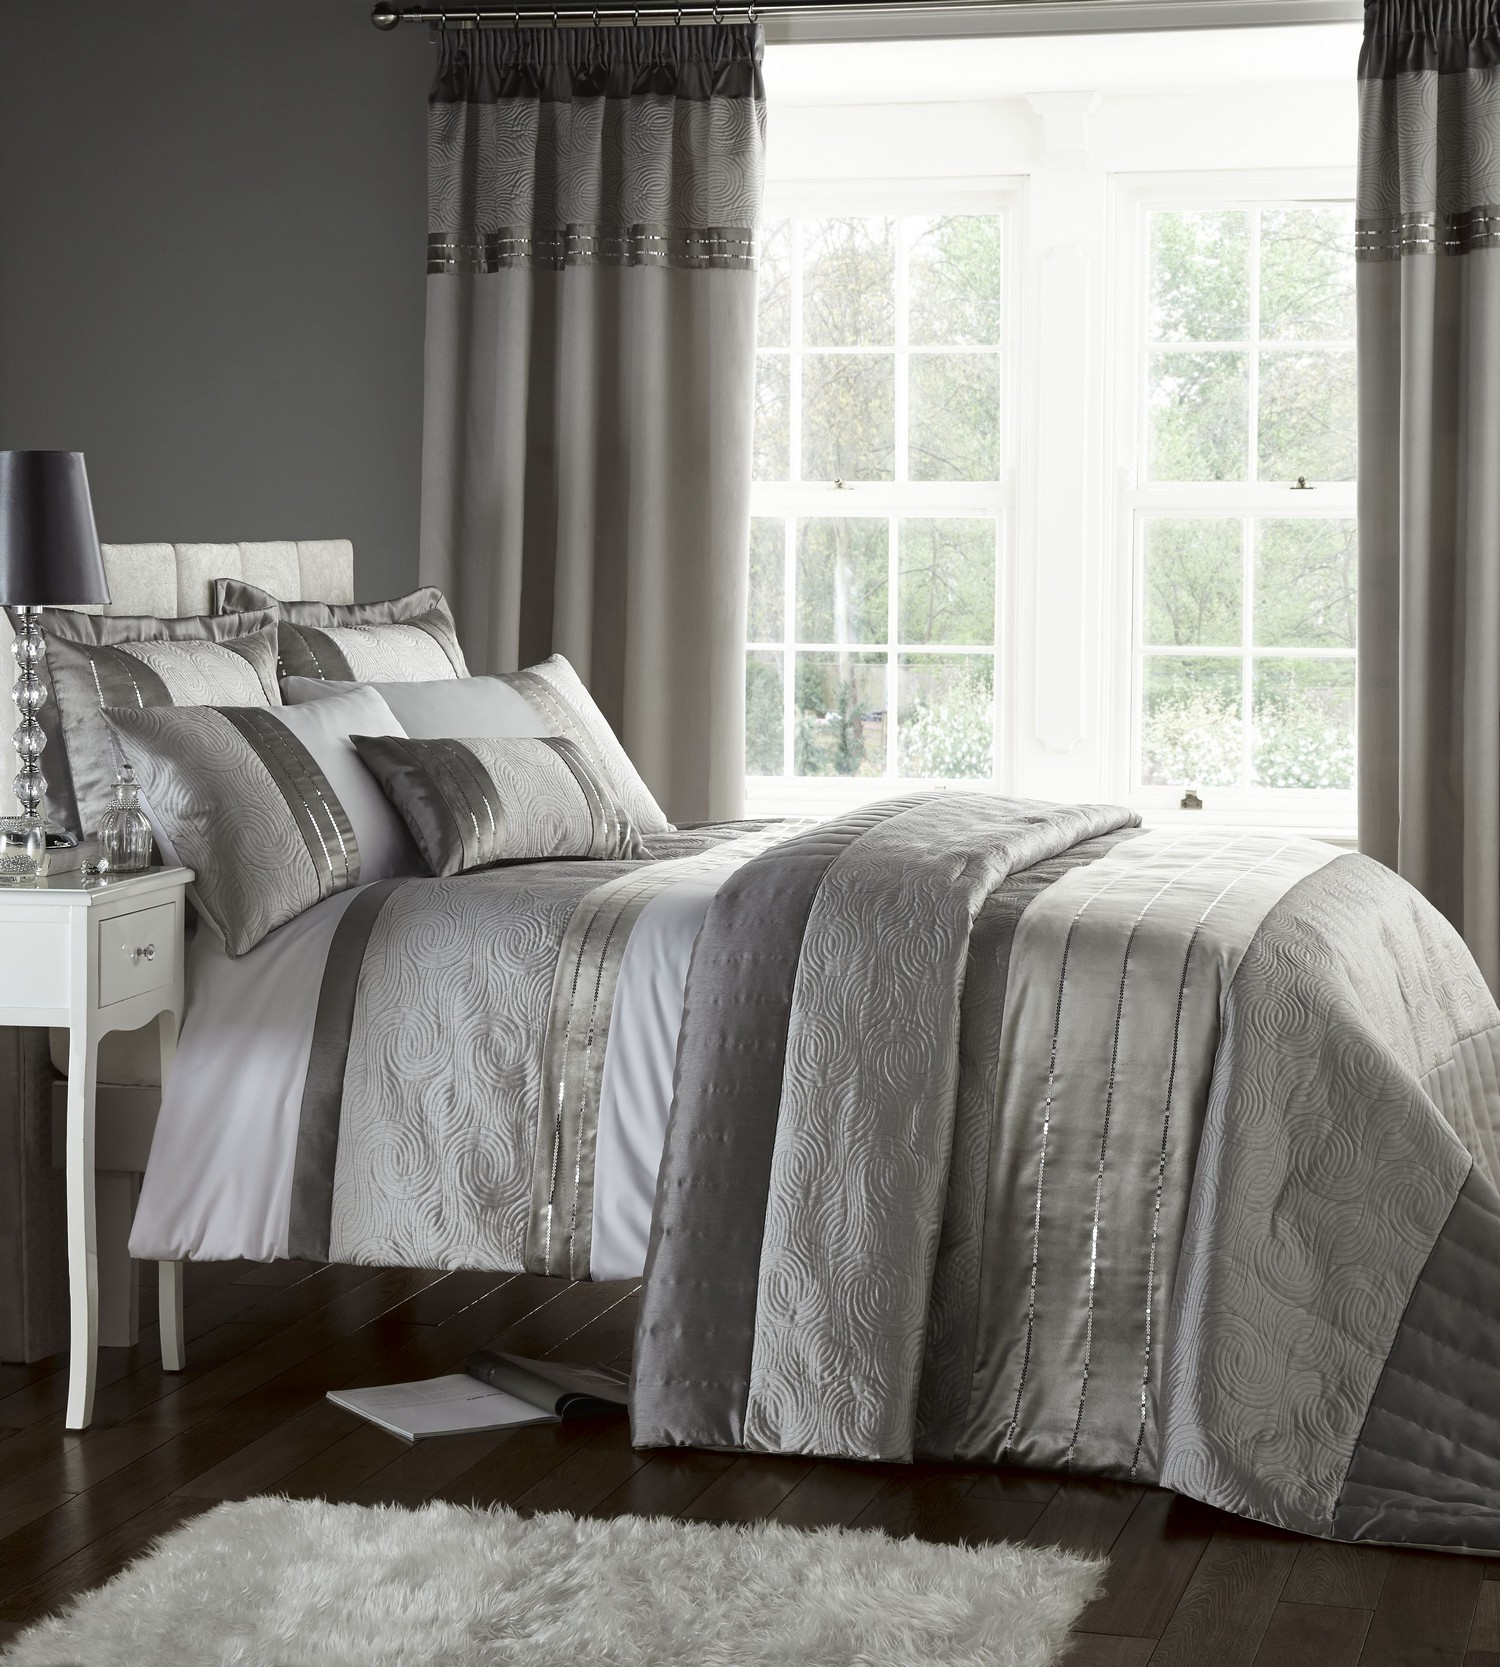 silver grey luxury duvet quilt cover bedding bed set or curtains or bedspread ebay. Black Bedroom Furniture Sets. Home Design Ideas